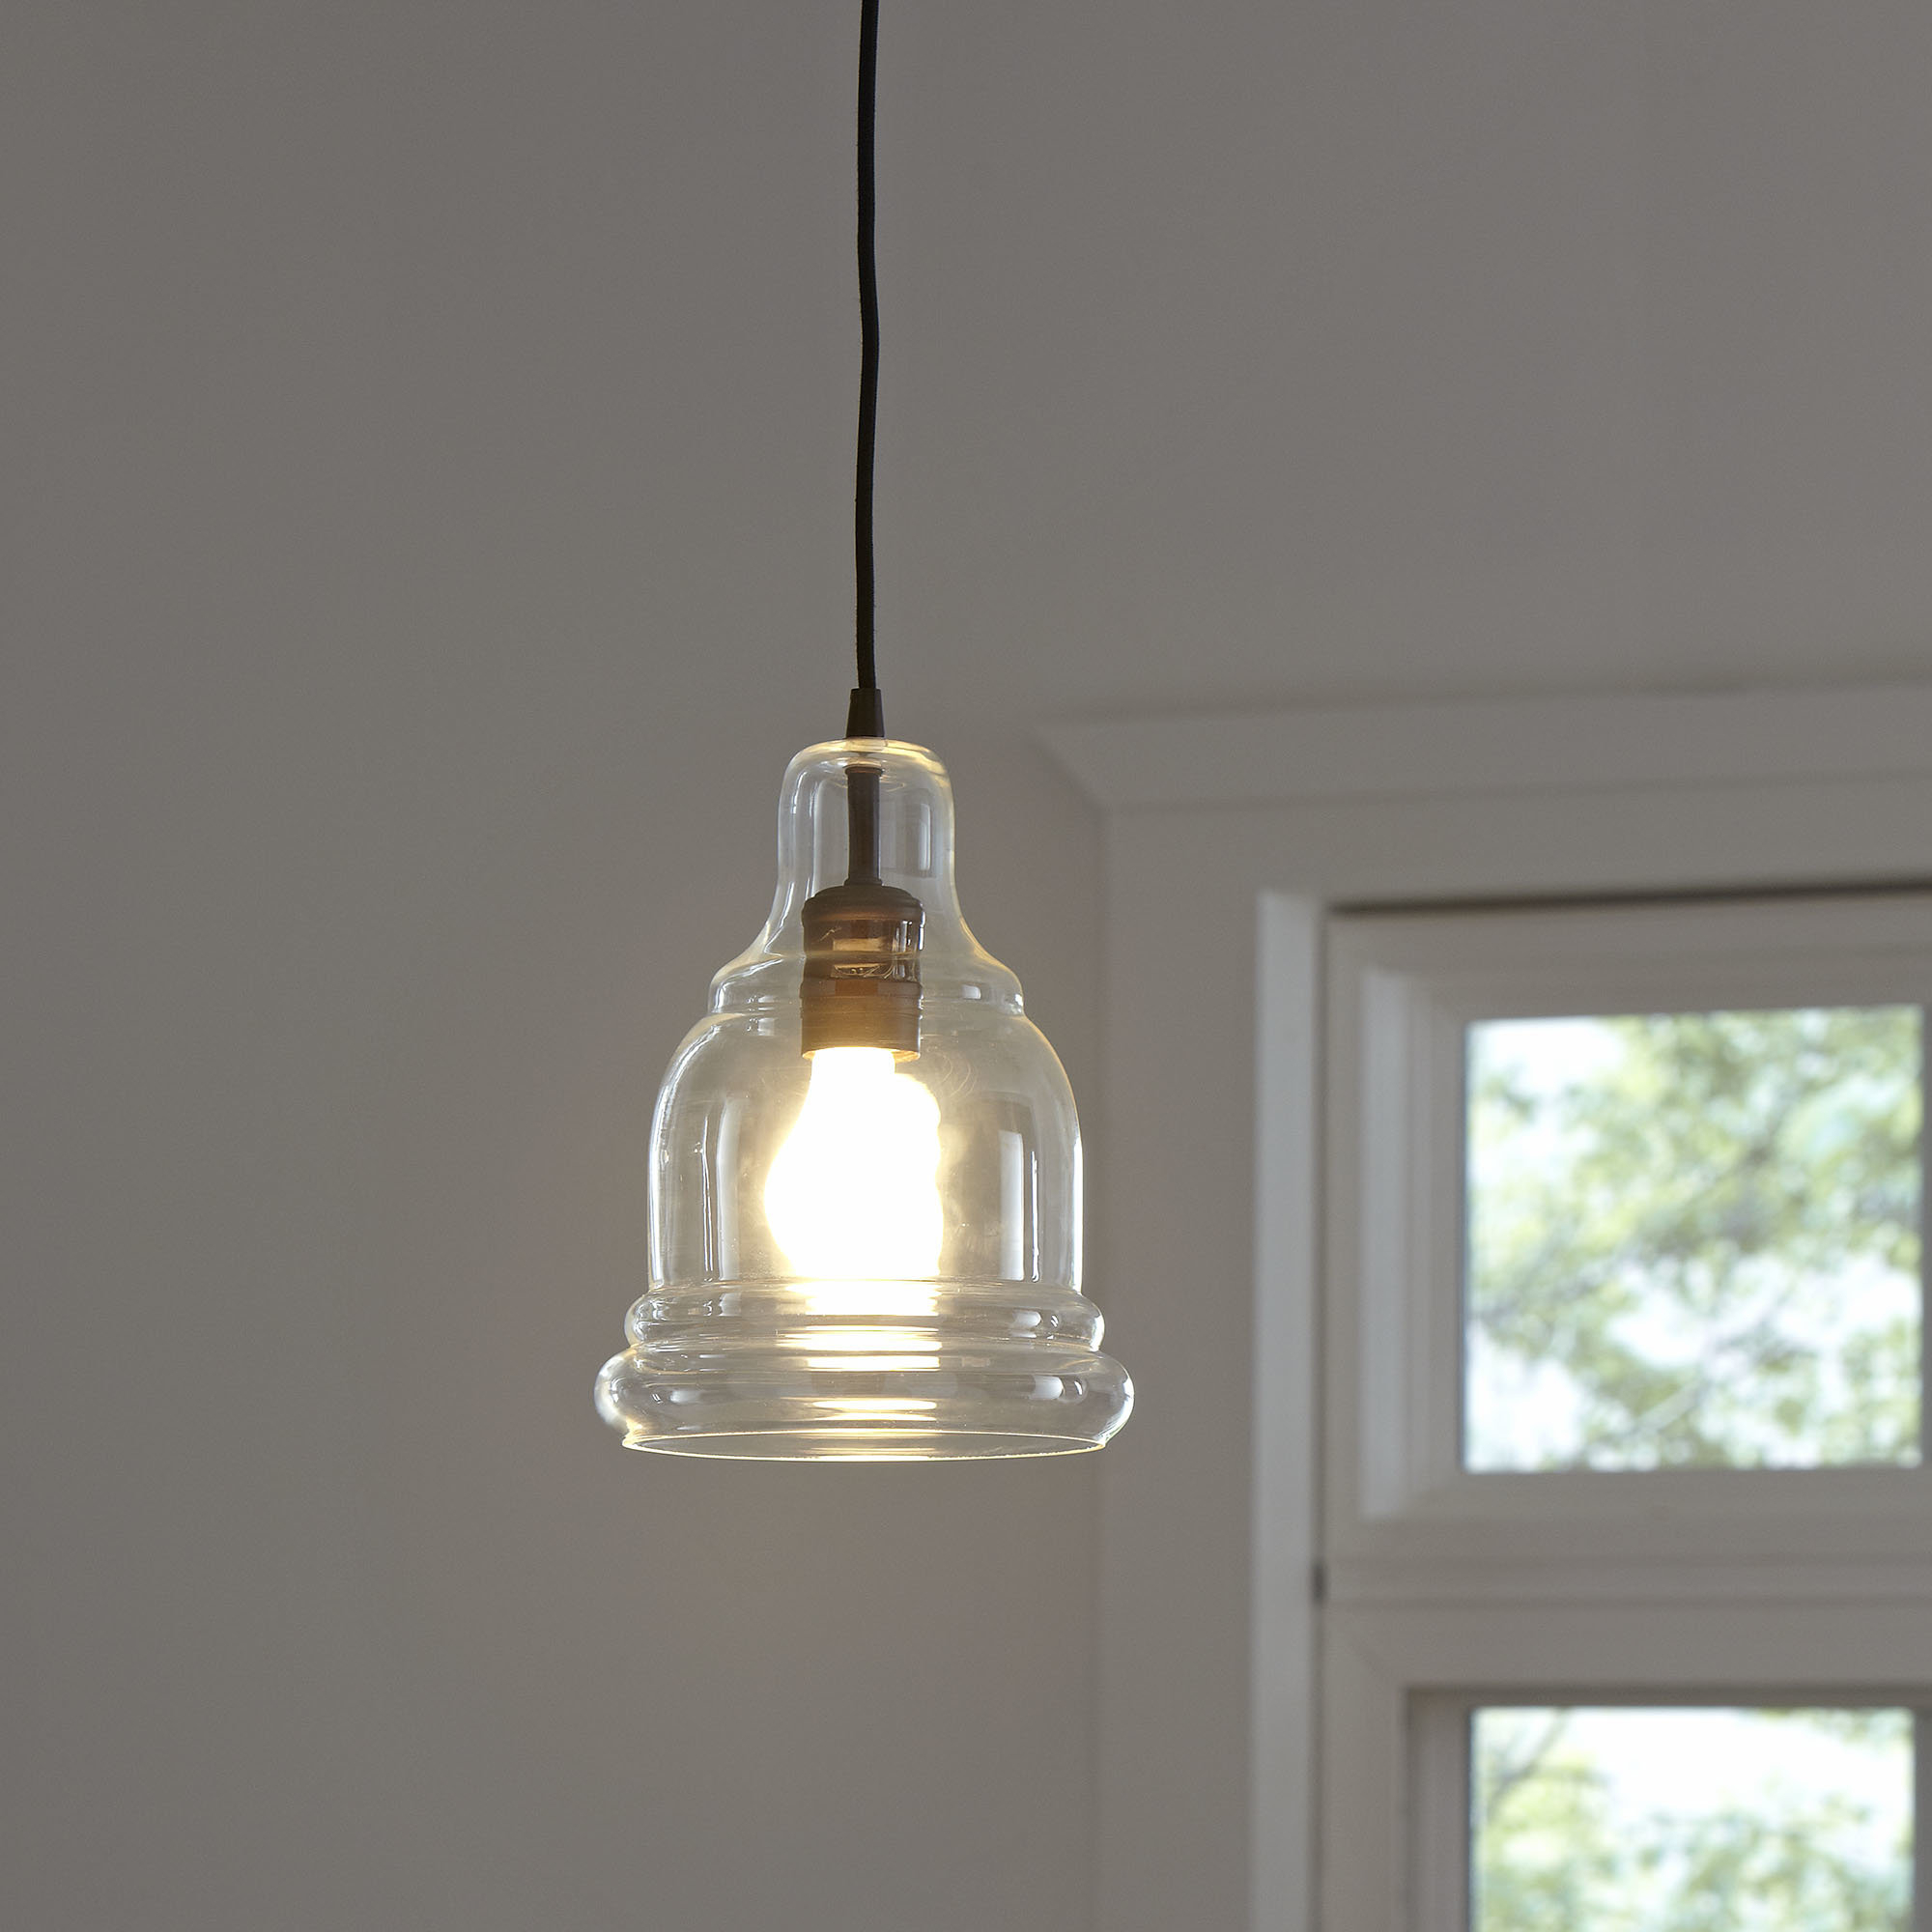 Fresno Dome 1 Light Bell Pendants Throughout Best And Newest Rafaello Edison 1 Light Bell Pendant (View 12 of 25)